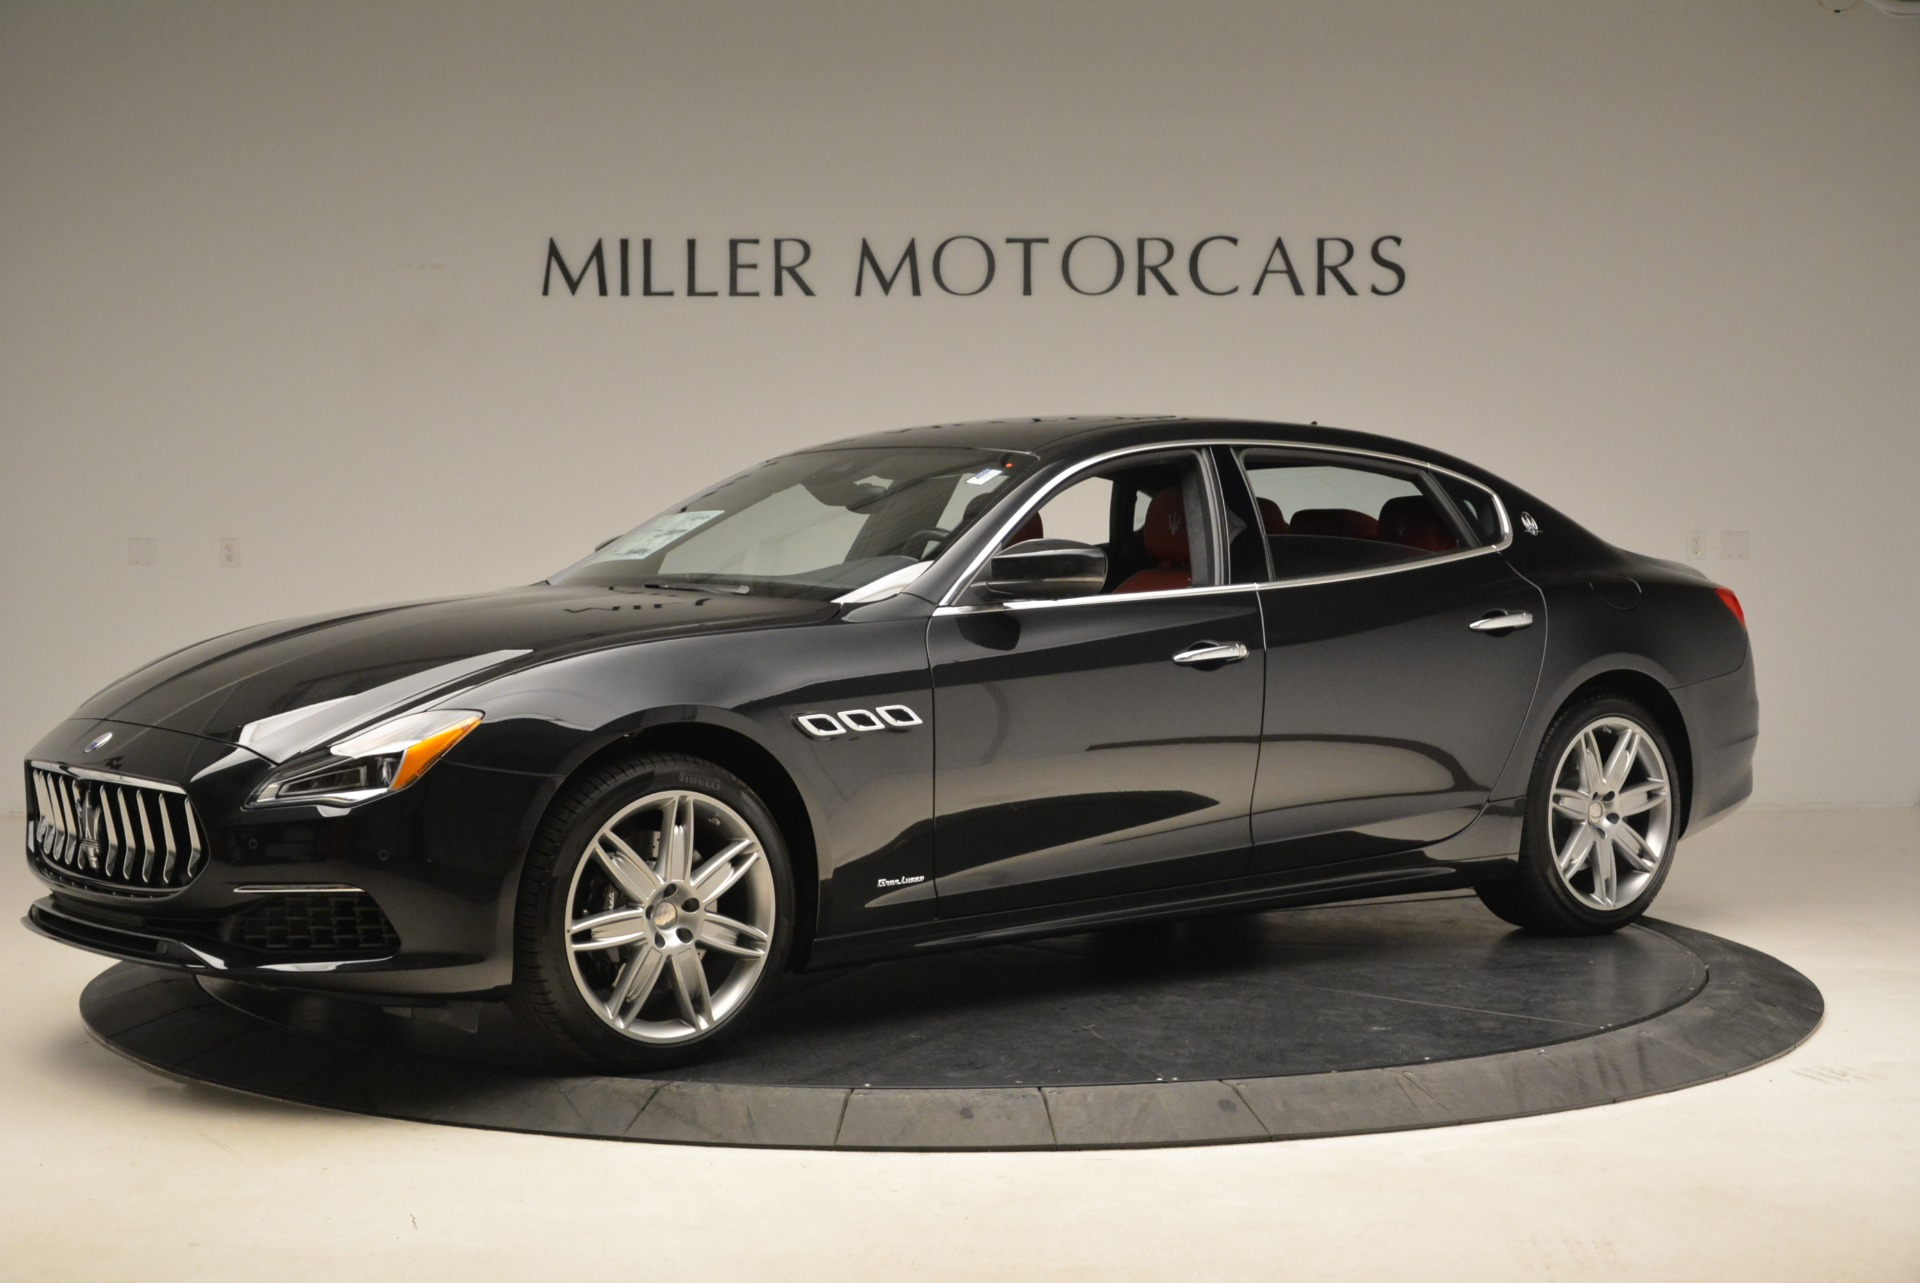 New 2018 Maserati Quattroporte S Q4 GranLusso For Sale In Greenwich, CT. Alfa Romeo of Greenwich, M2175 2390_p2